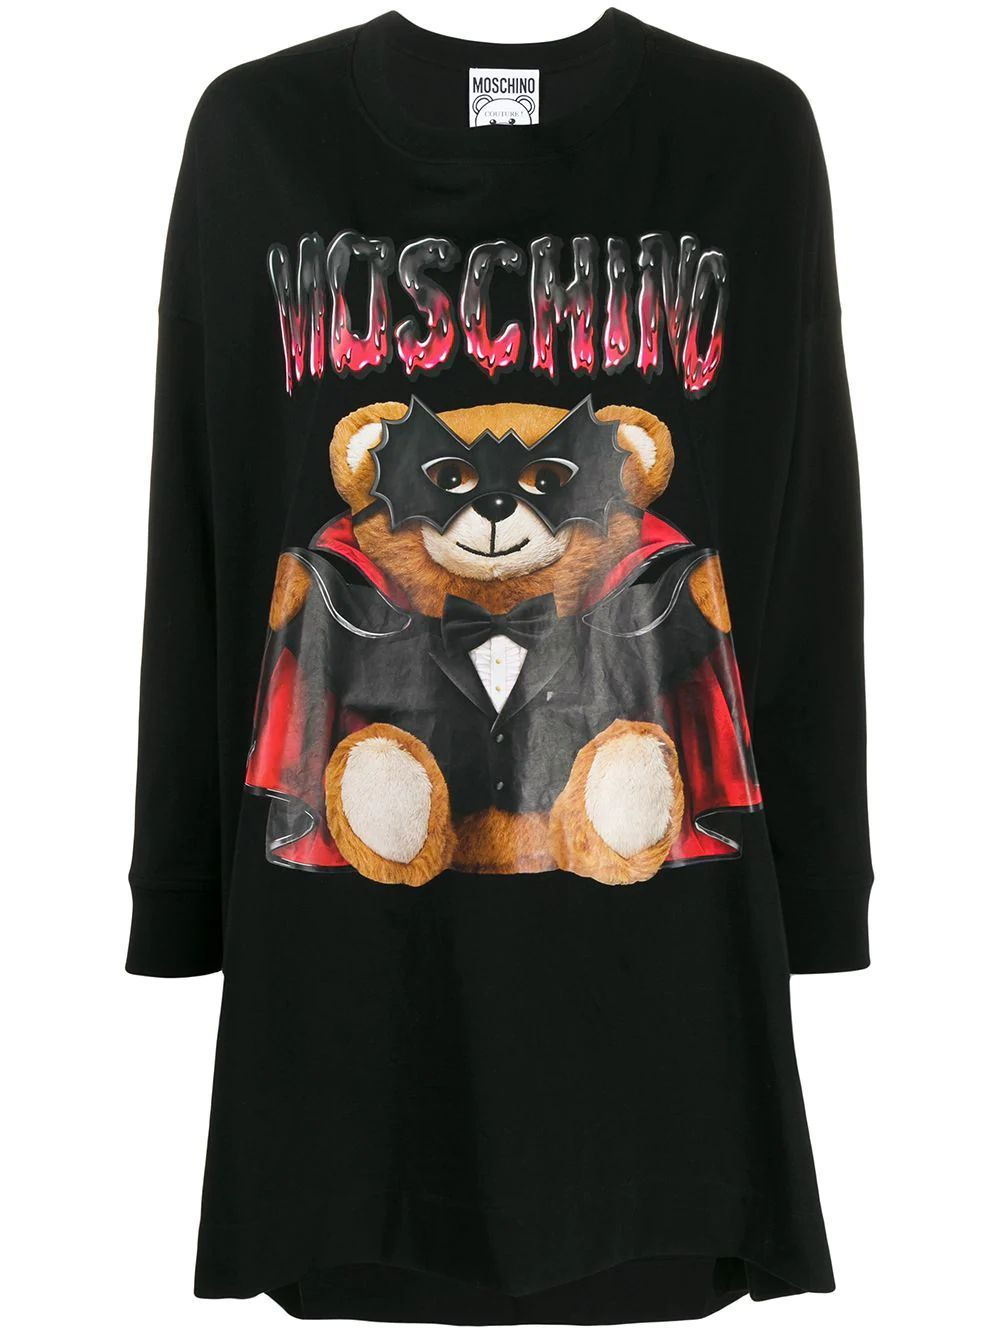 MOSCHINO WOMEN'S V045805401555 BLACK COTTON DRESS